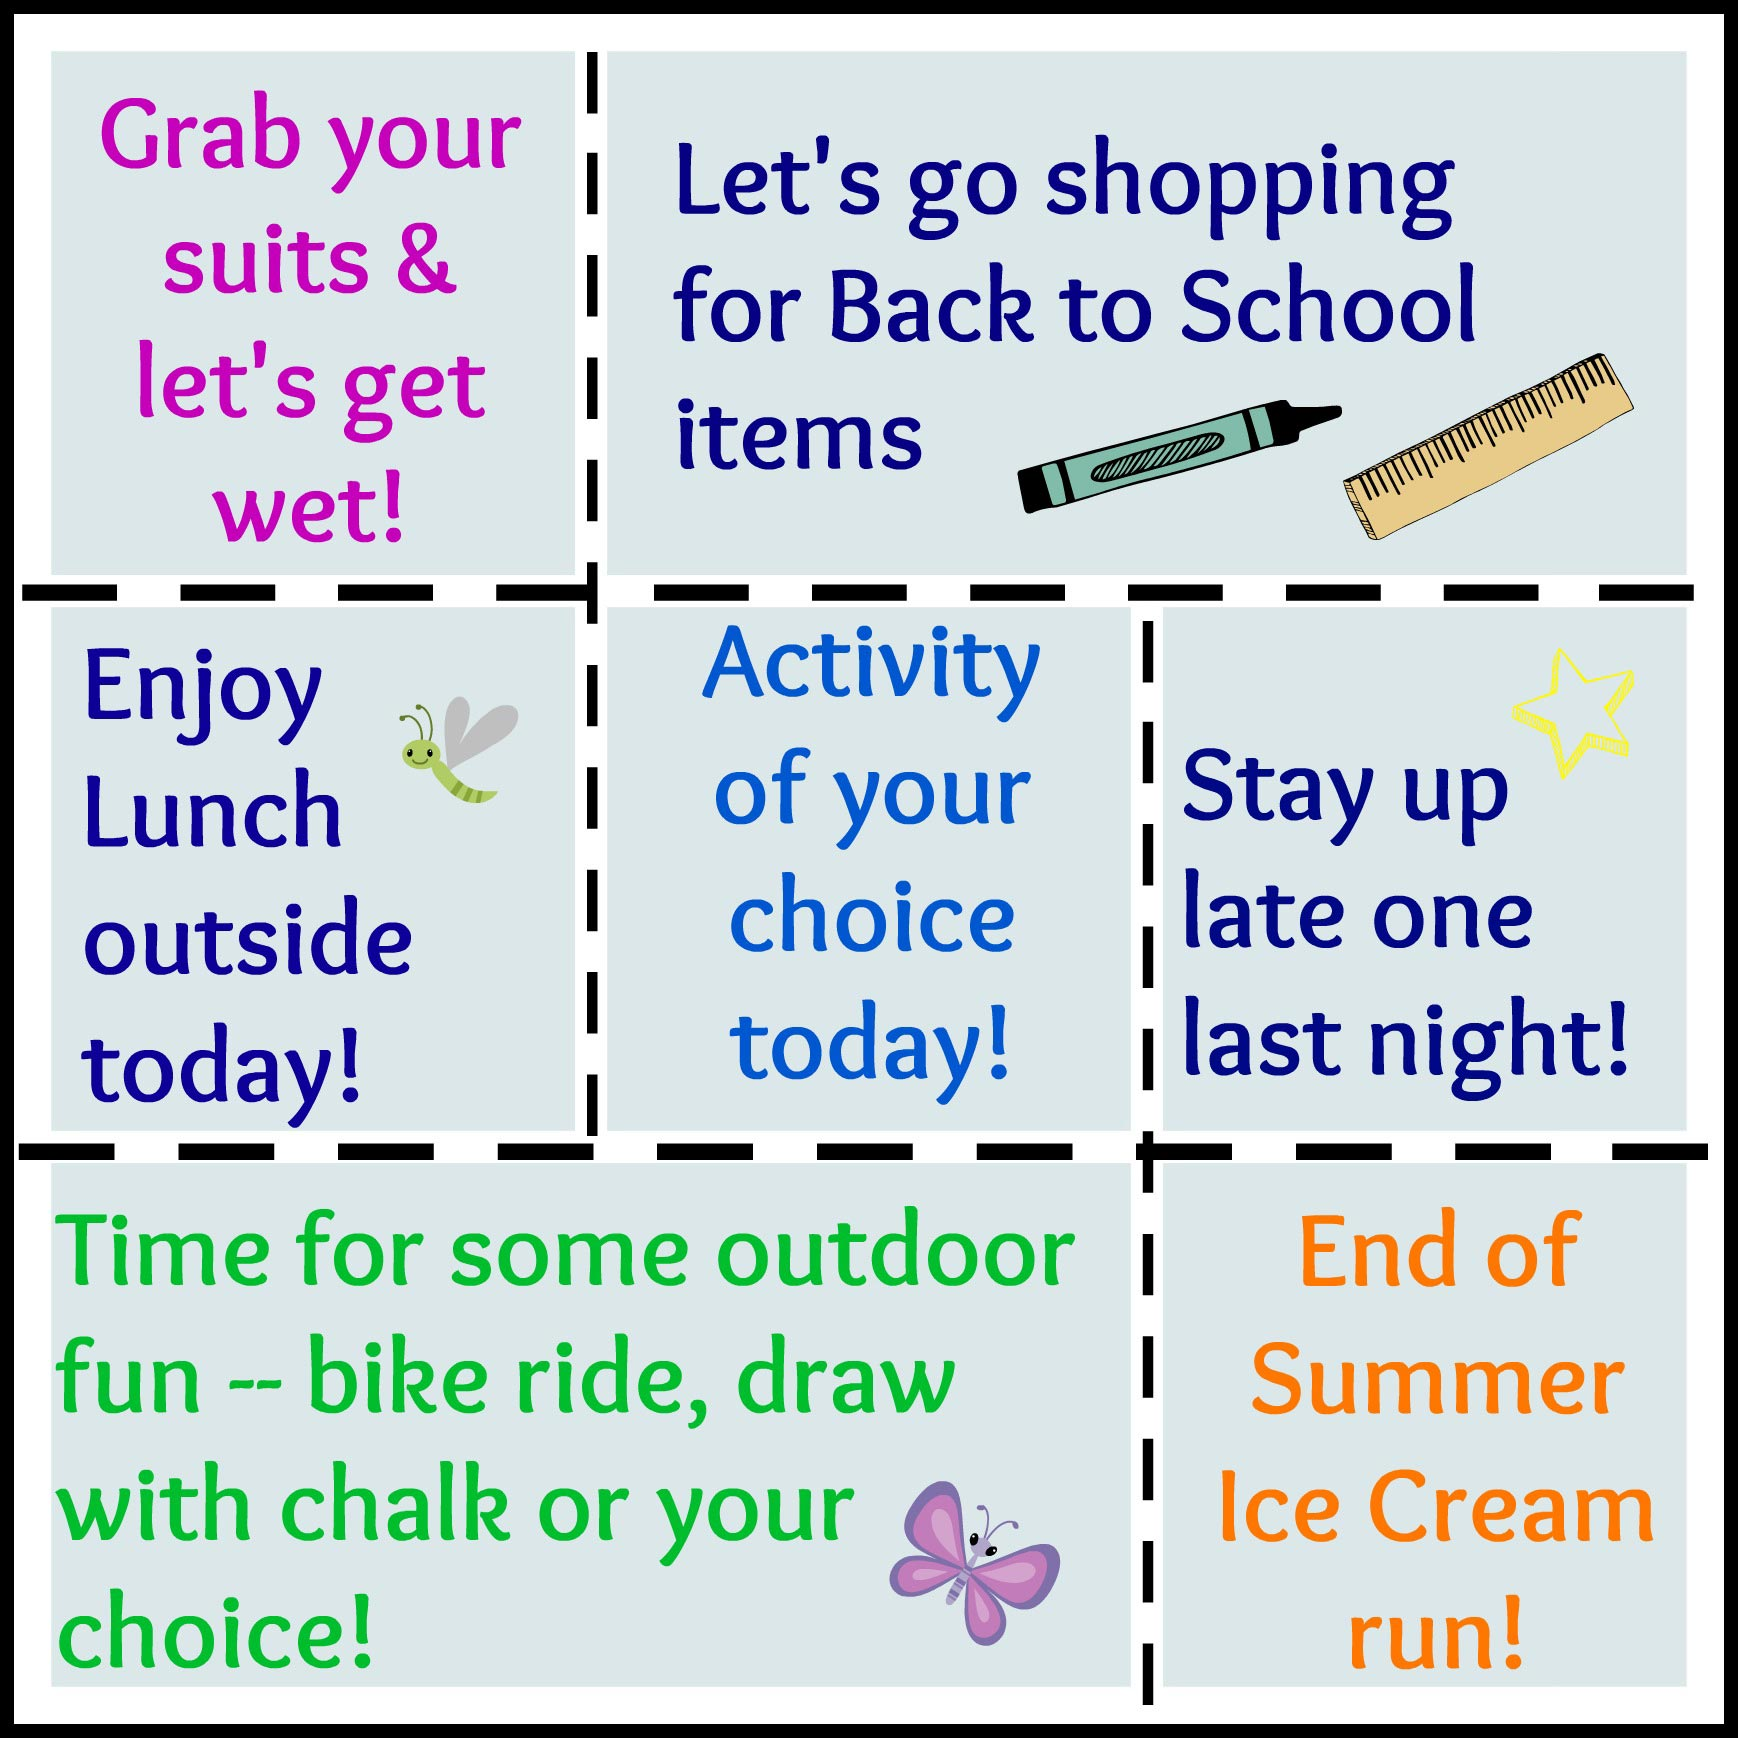 7 Ways To Get Ready For Back To School